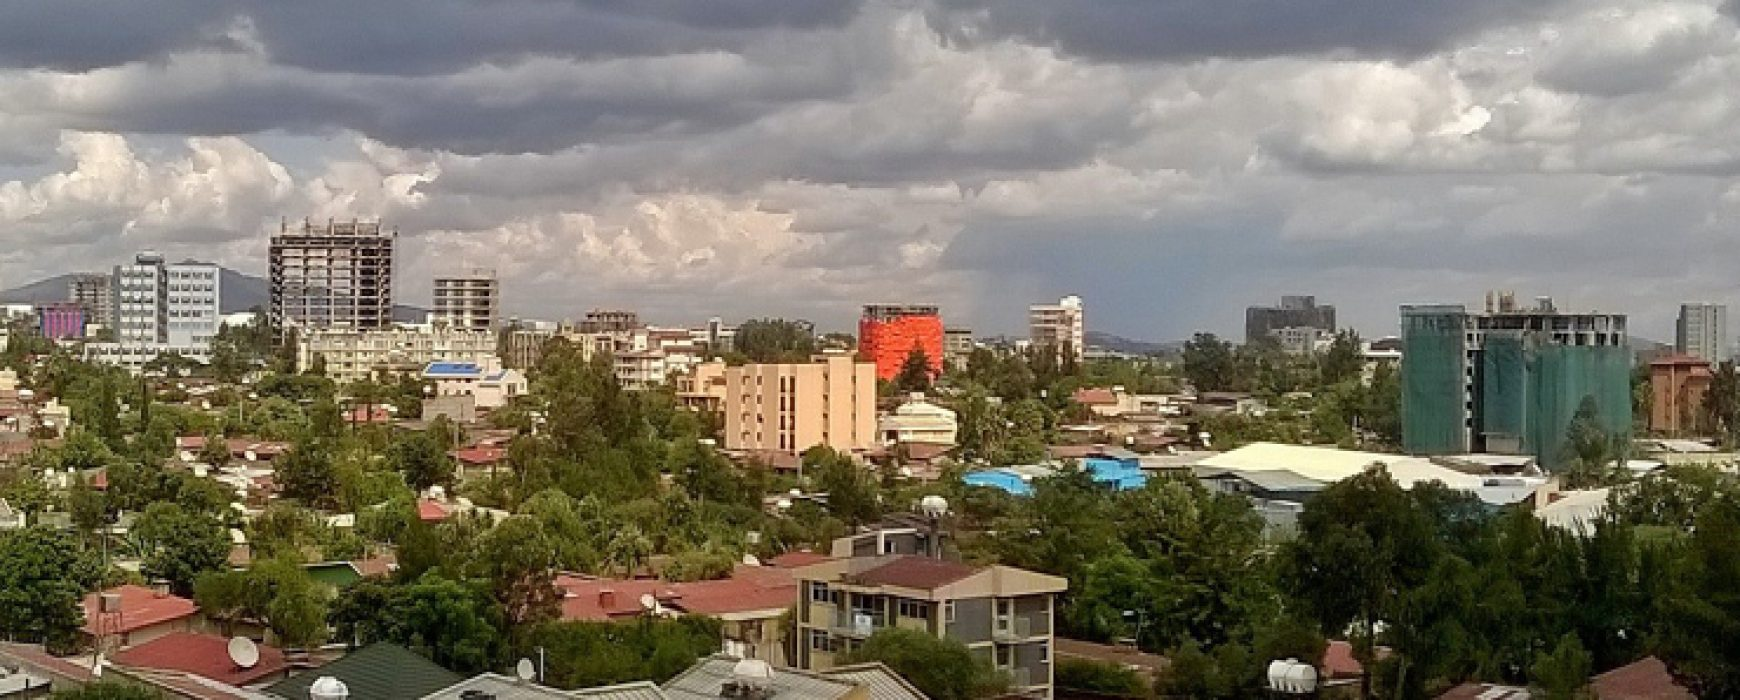 Ethiopia: the LIS project in a new phase